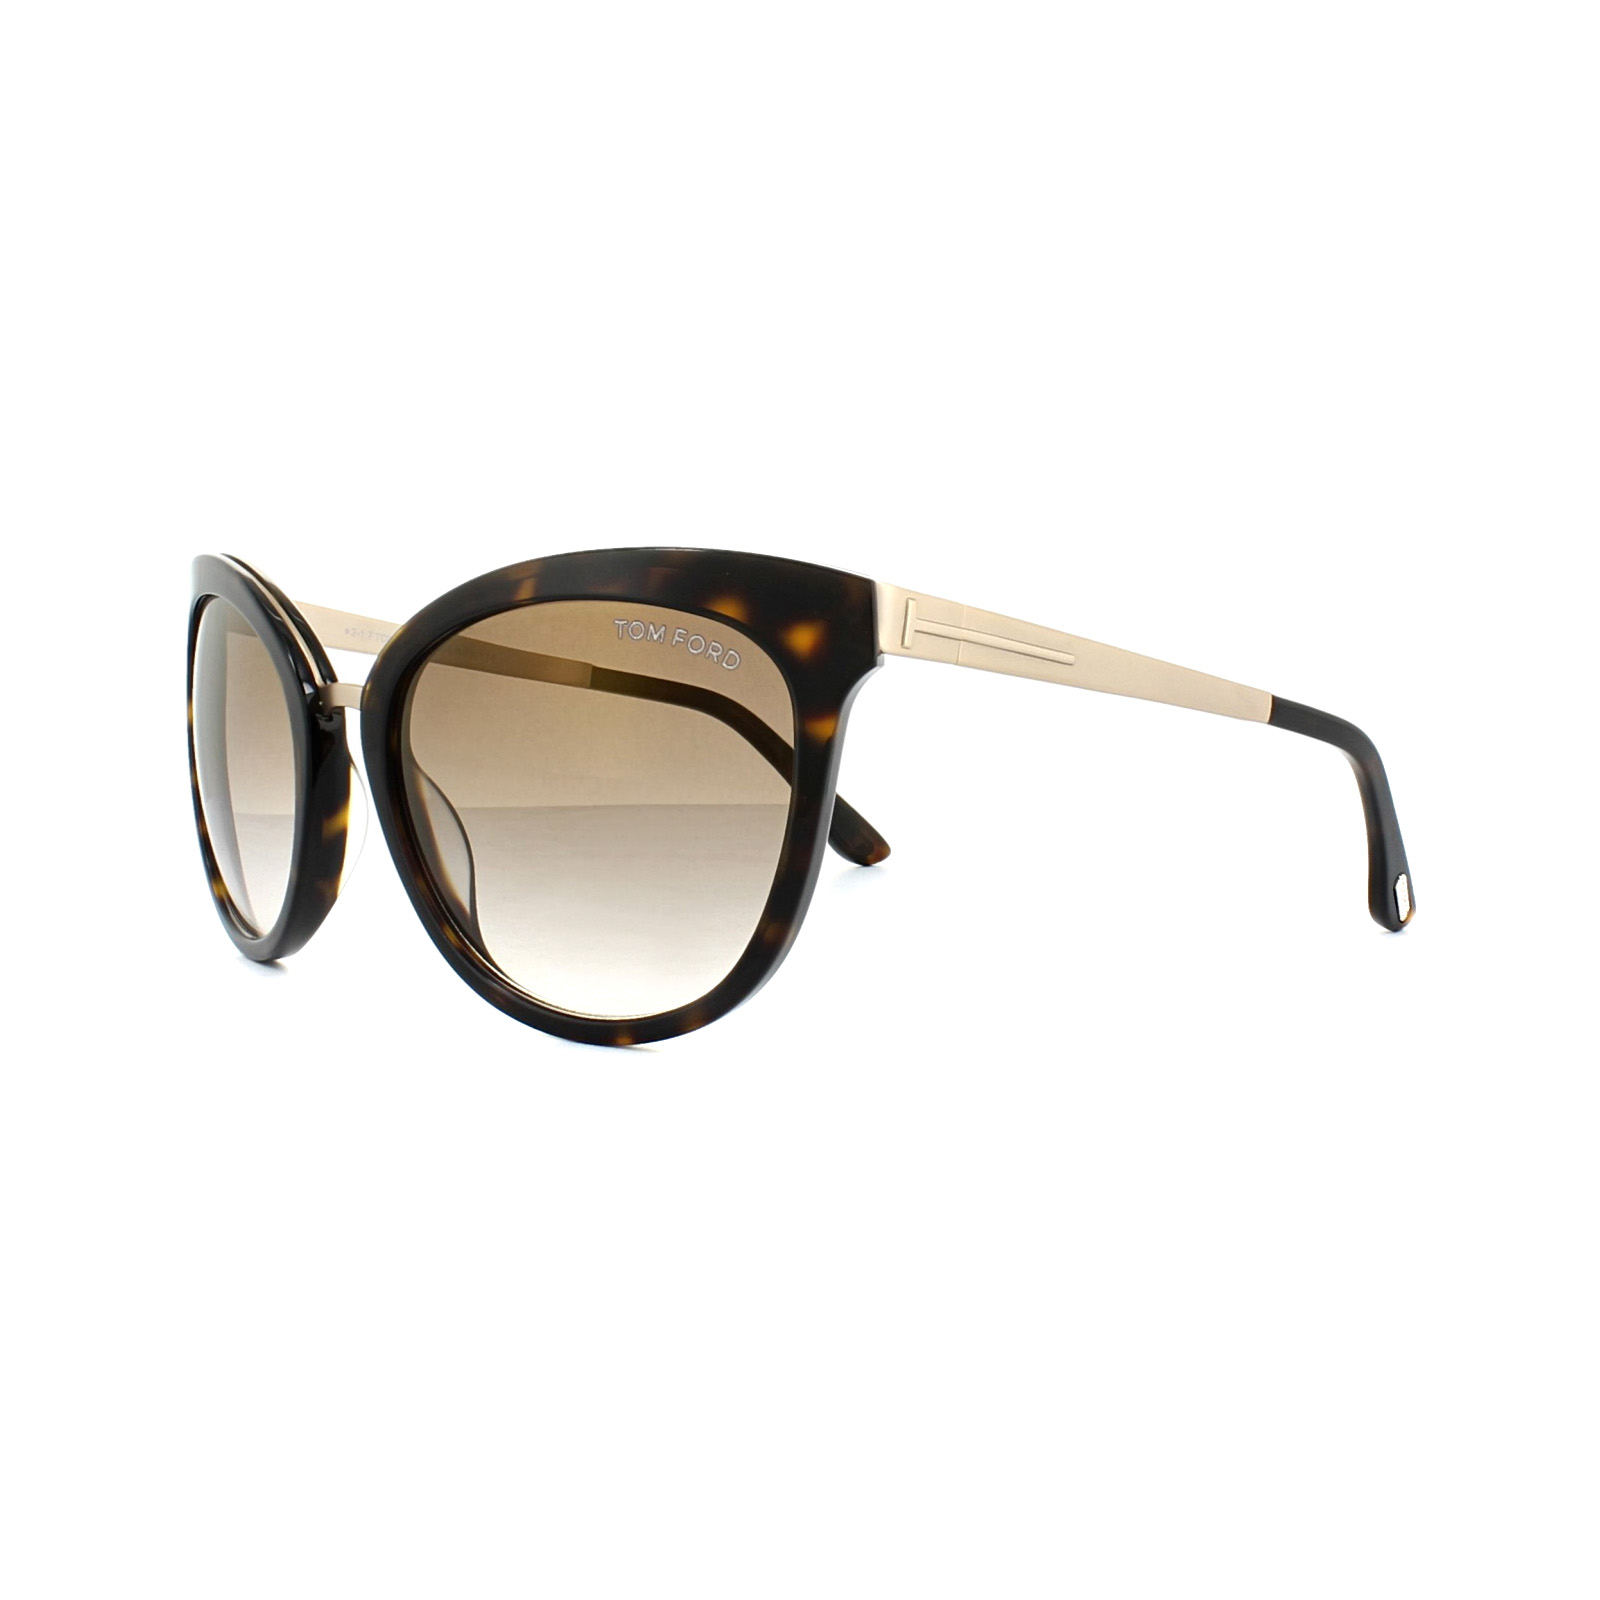 Sentinel Tom Ford Sunglasses 0461 Emma 52G Dark Havana Gold Brown Gradient c9dc190724